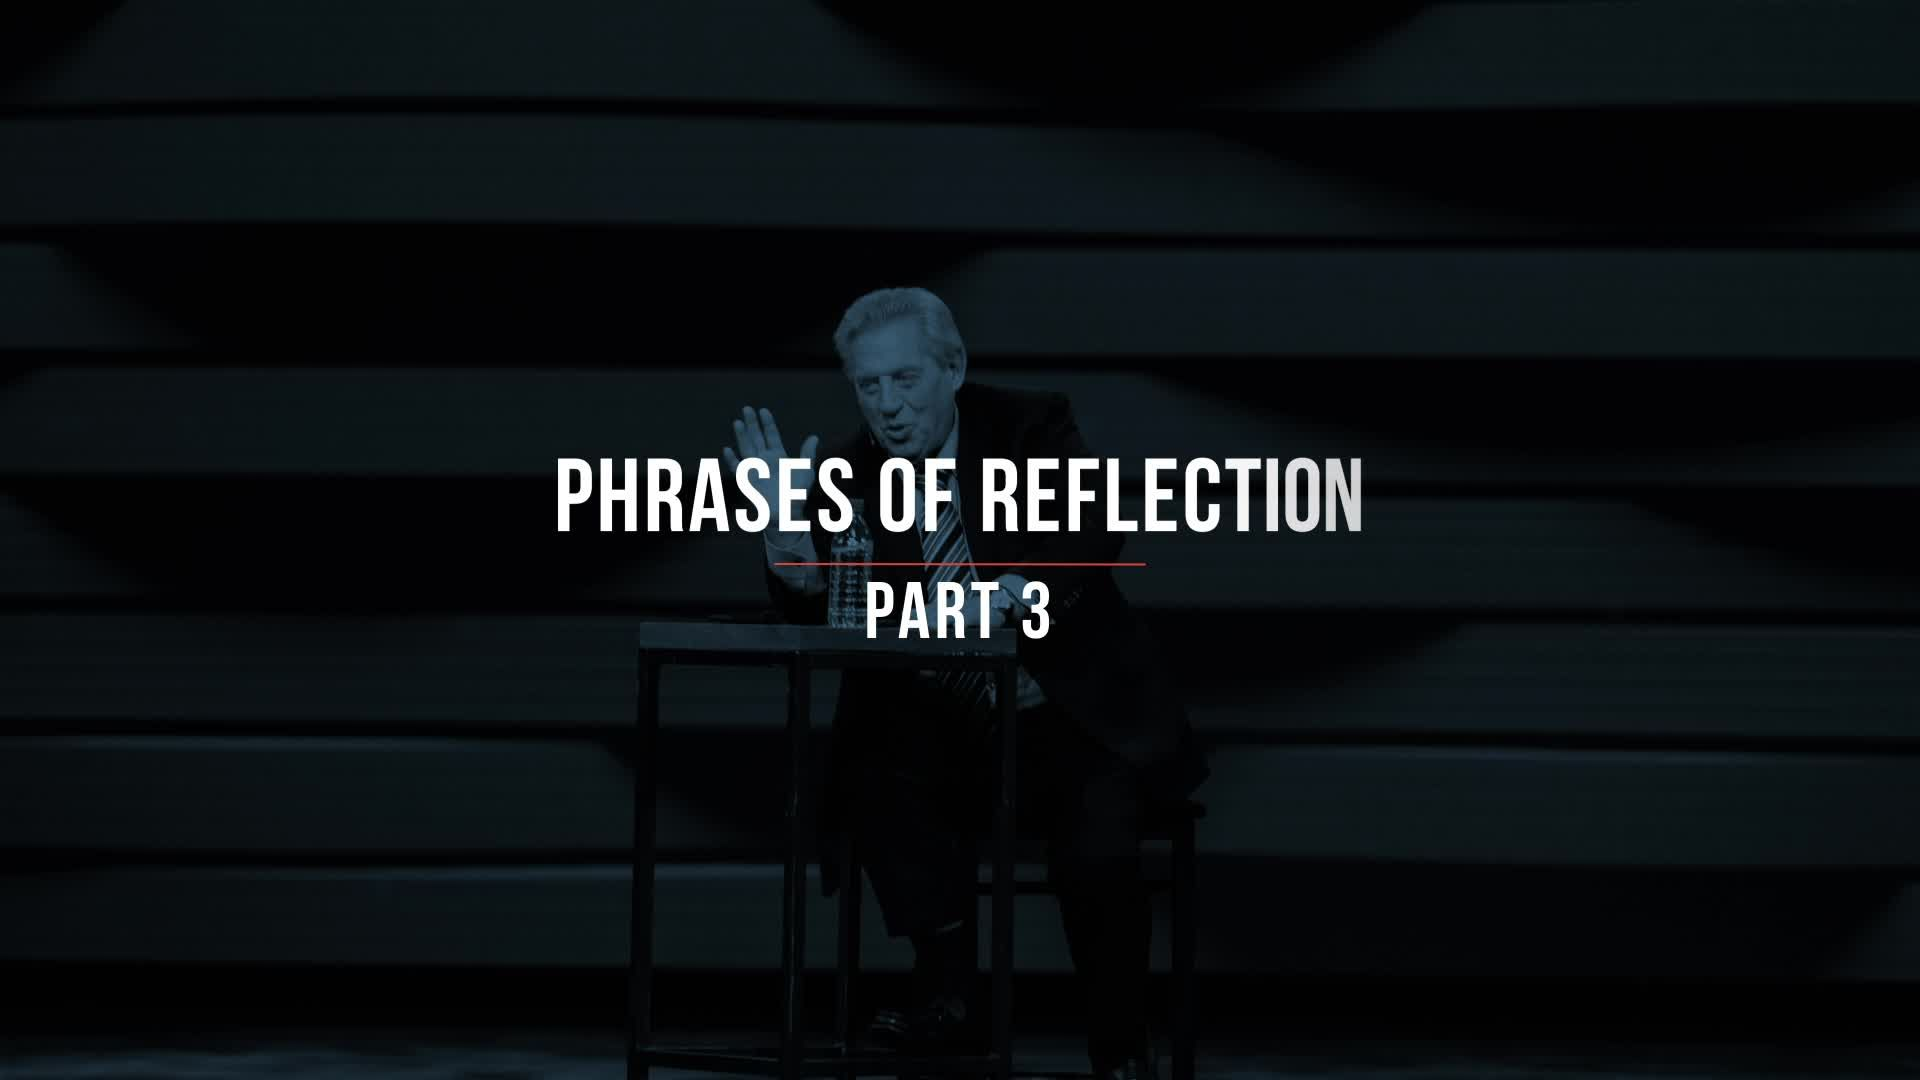 Phrases of Reflection Part 3